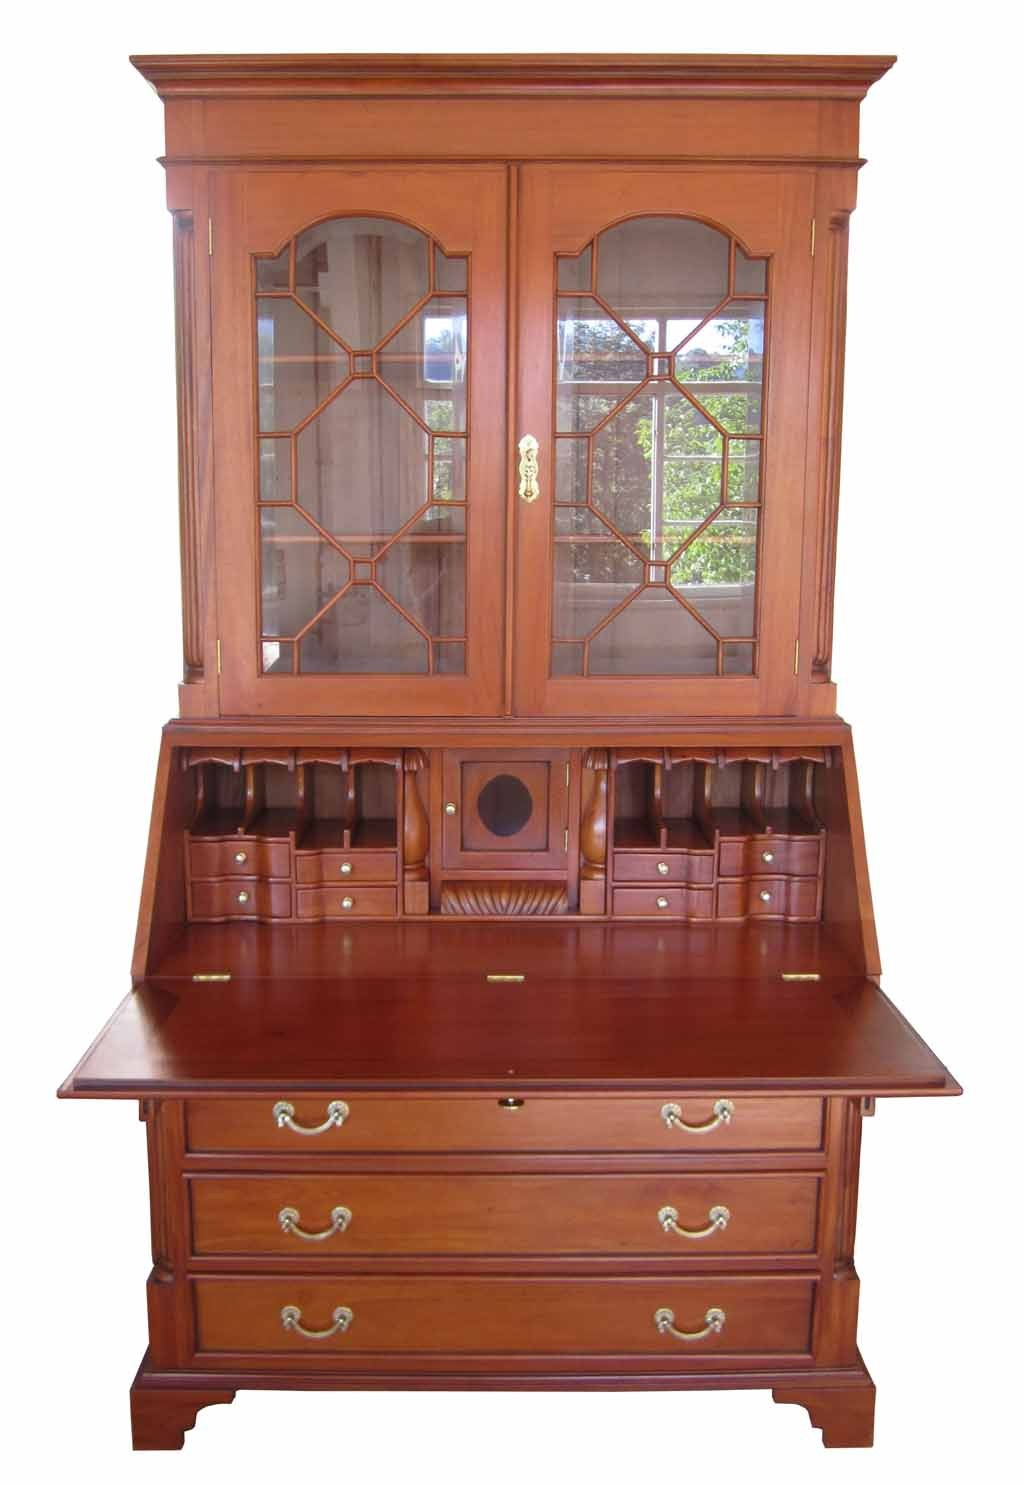 sekret r biedermeier kirsche antik m bel massiv. Black Bedroom Furniture Sets. Home Design Ideas